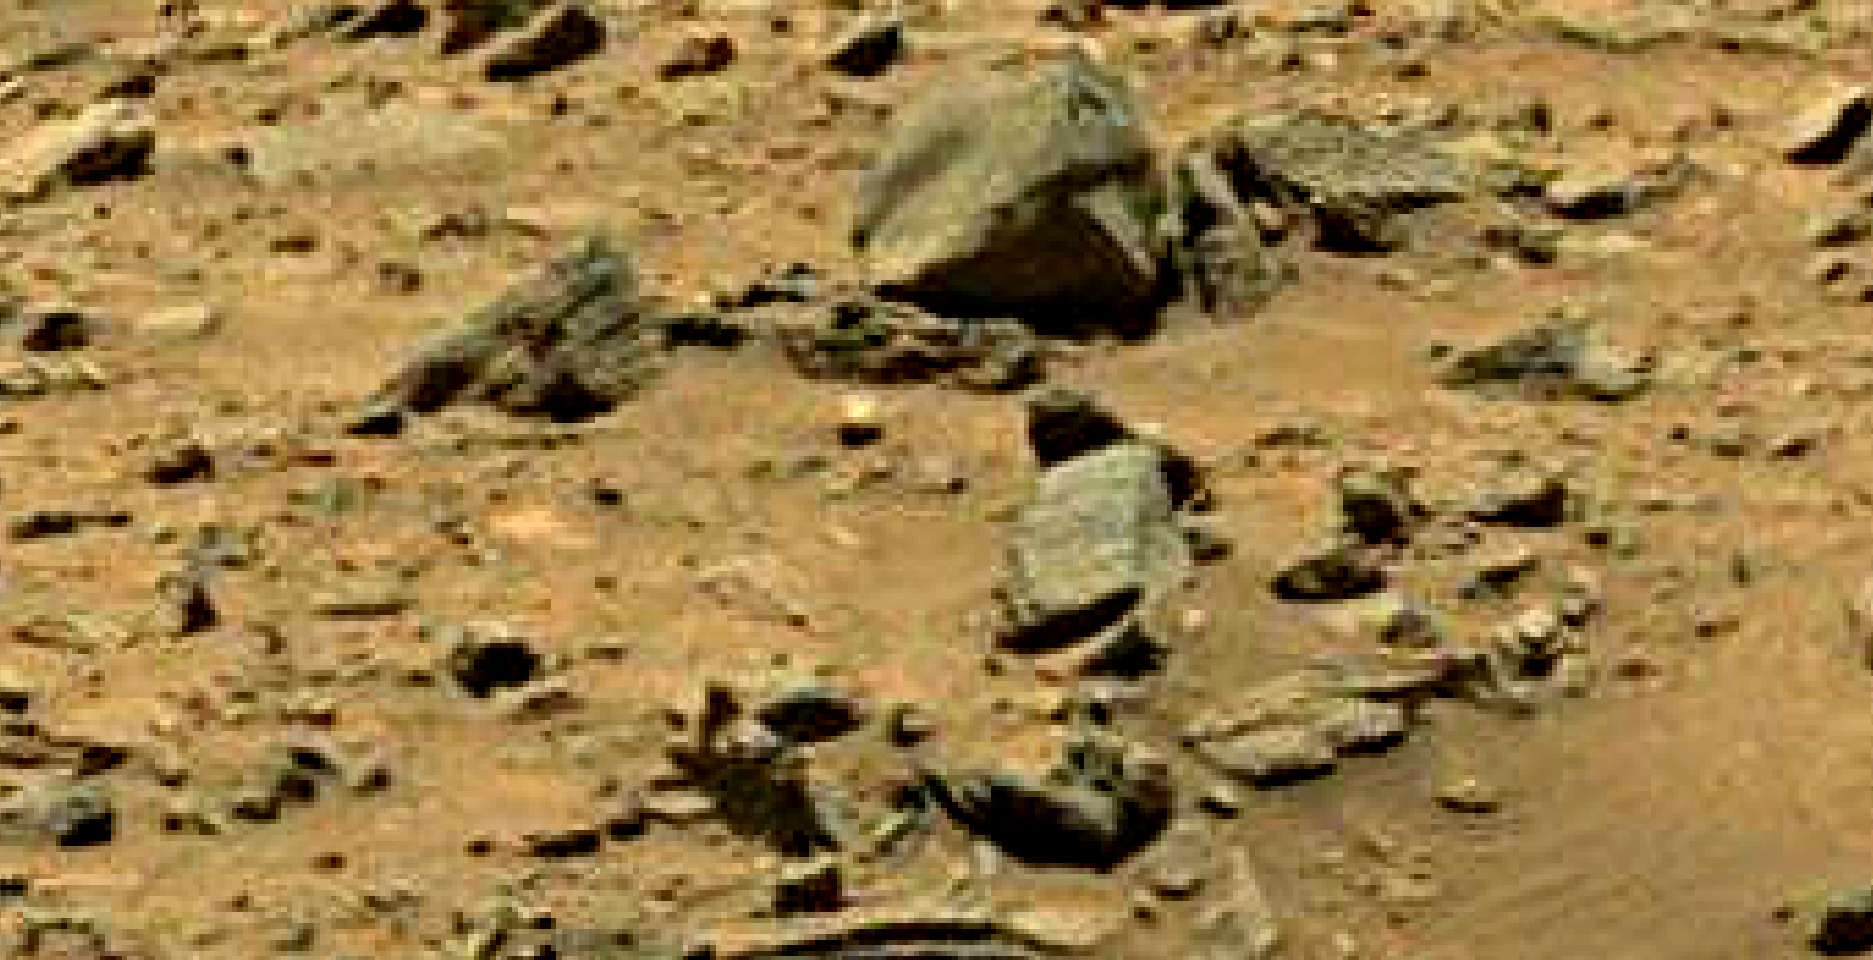 mars sol 1399 anomaly artifacts 14 was life on mars